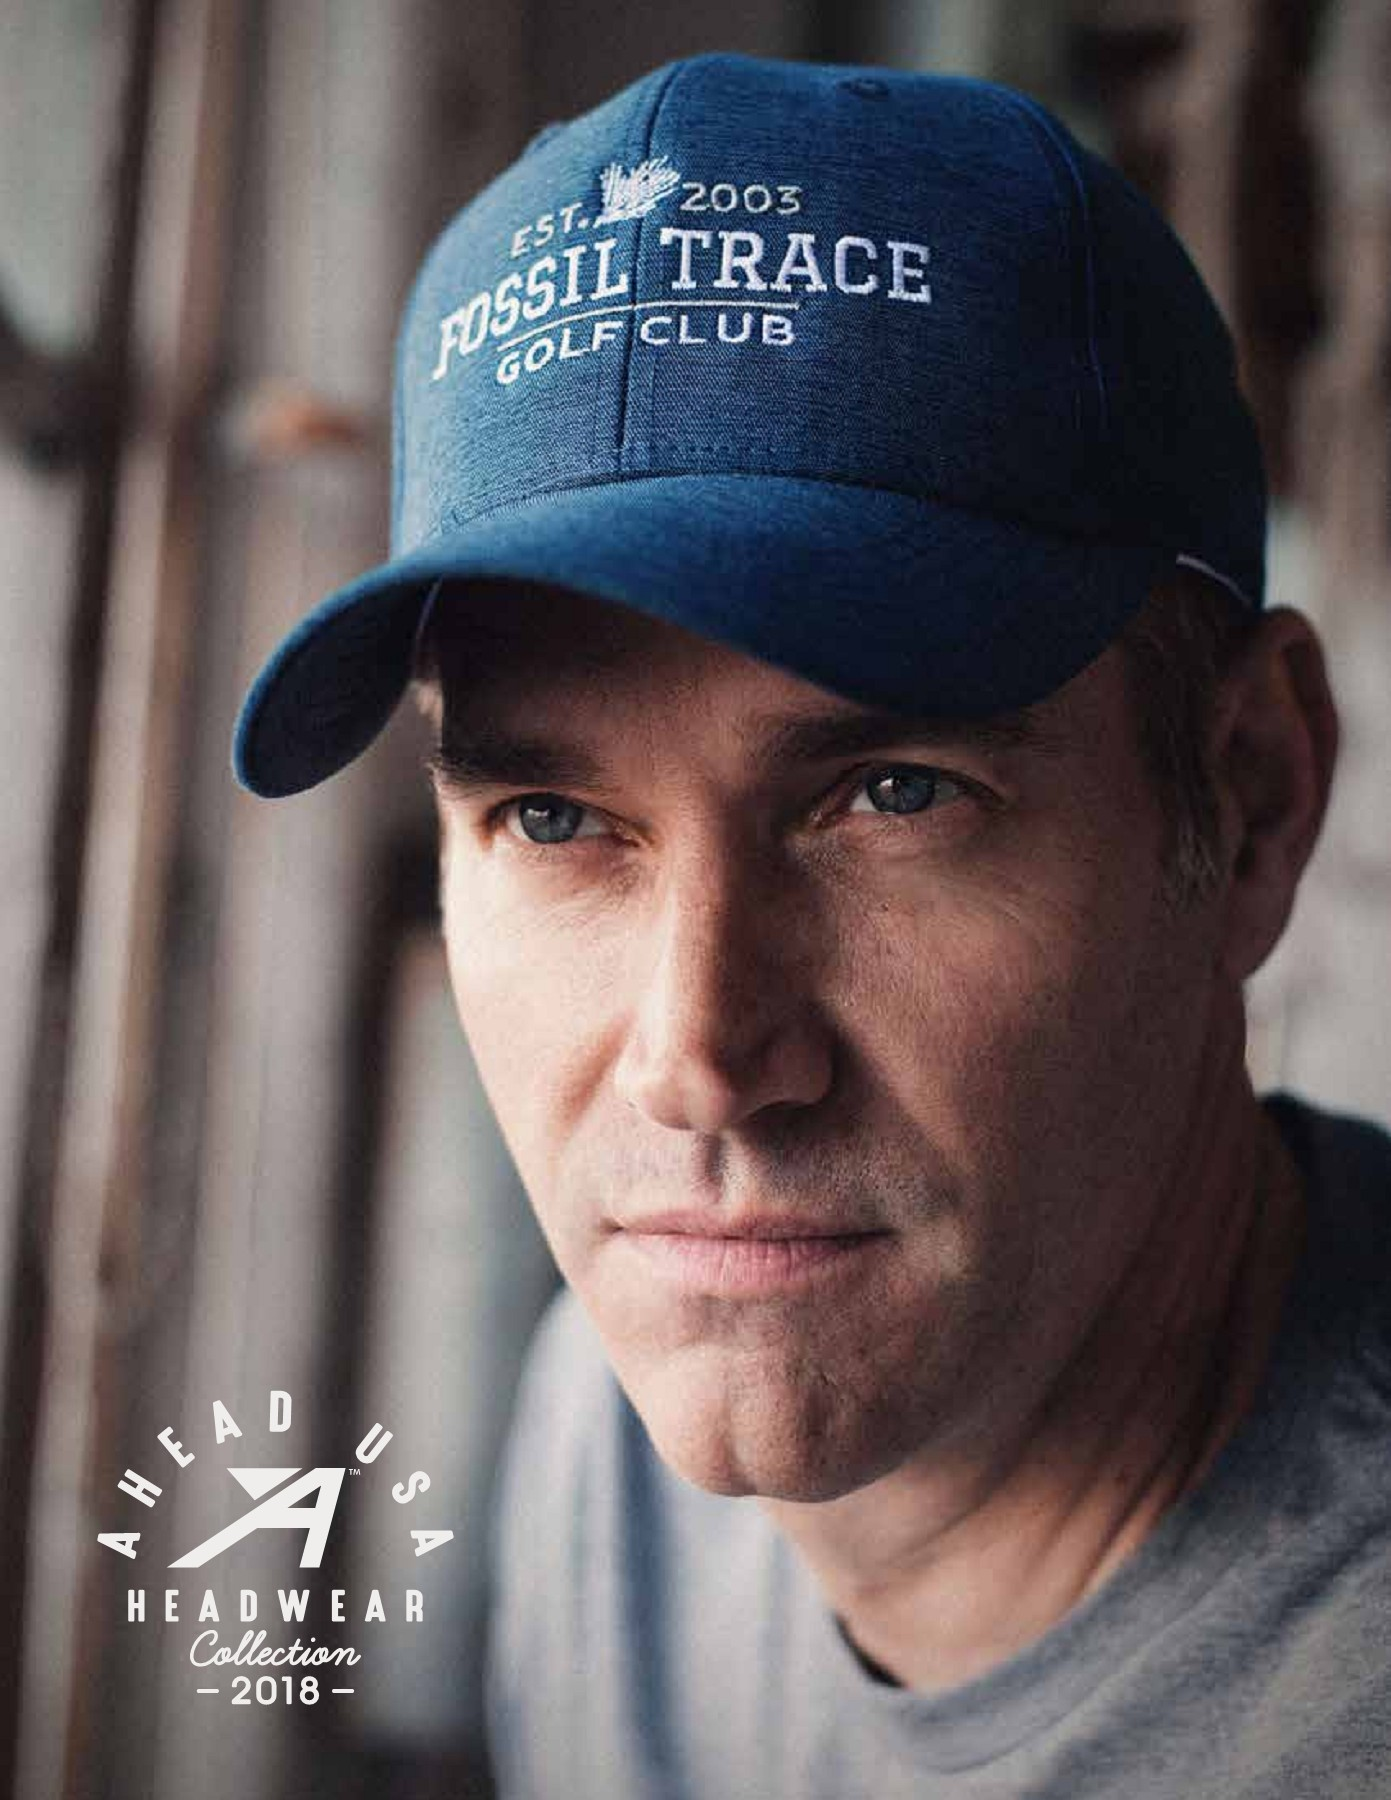 a39735c87a4 2018 Ahead Headwear Pages 51 - 68 - Text Version